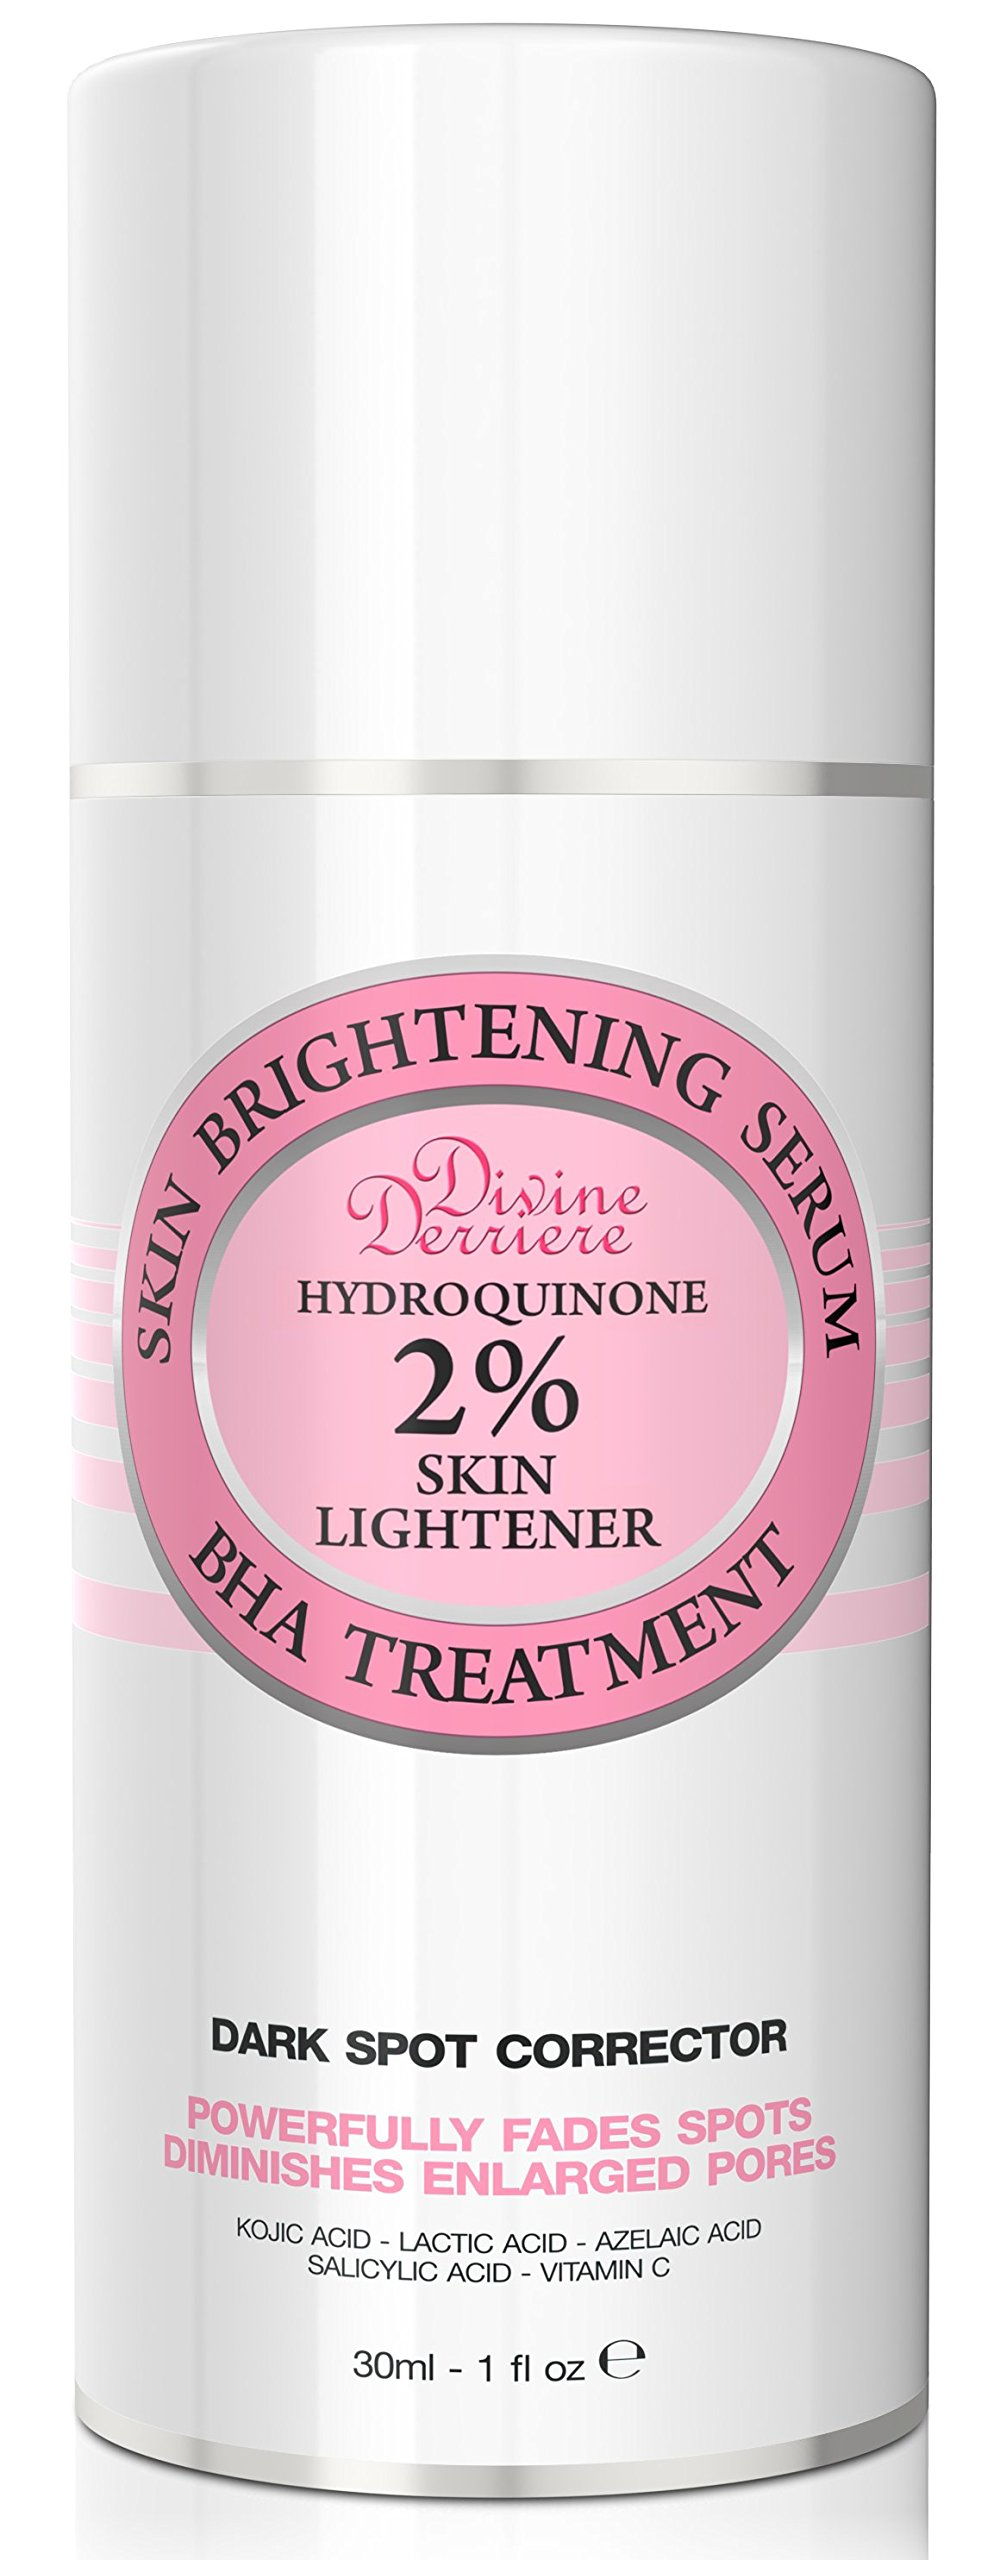 Divine Derriere Skin Lightening 2% Hydroquinone Dark Spot Corrector For Face & Melasma Treatment Fade Cream - Contains Vitamin C, Salicylic Acid, Kojic Acid, Azelaic Acid and Lactic Acid 1.0 oz / 30ml